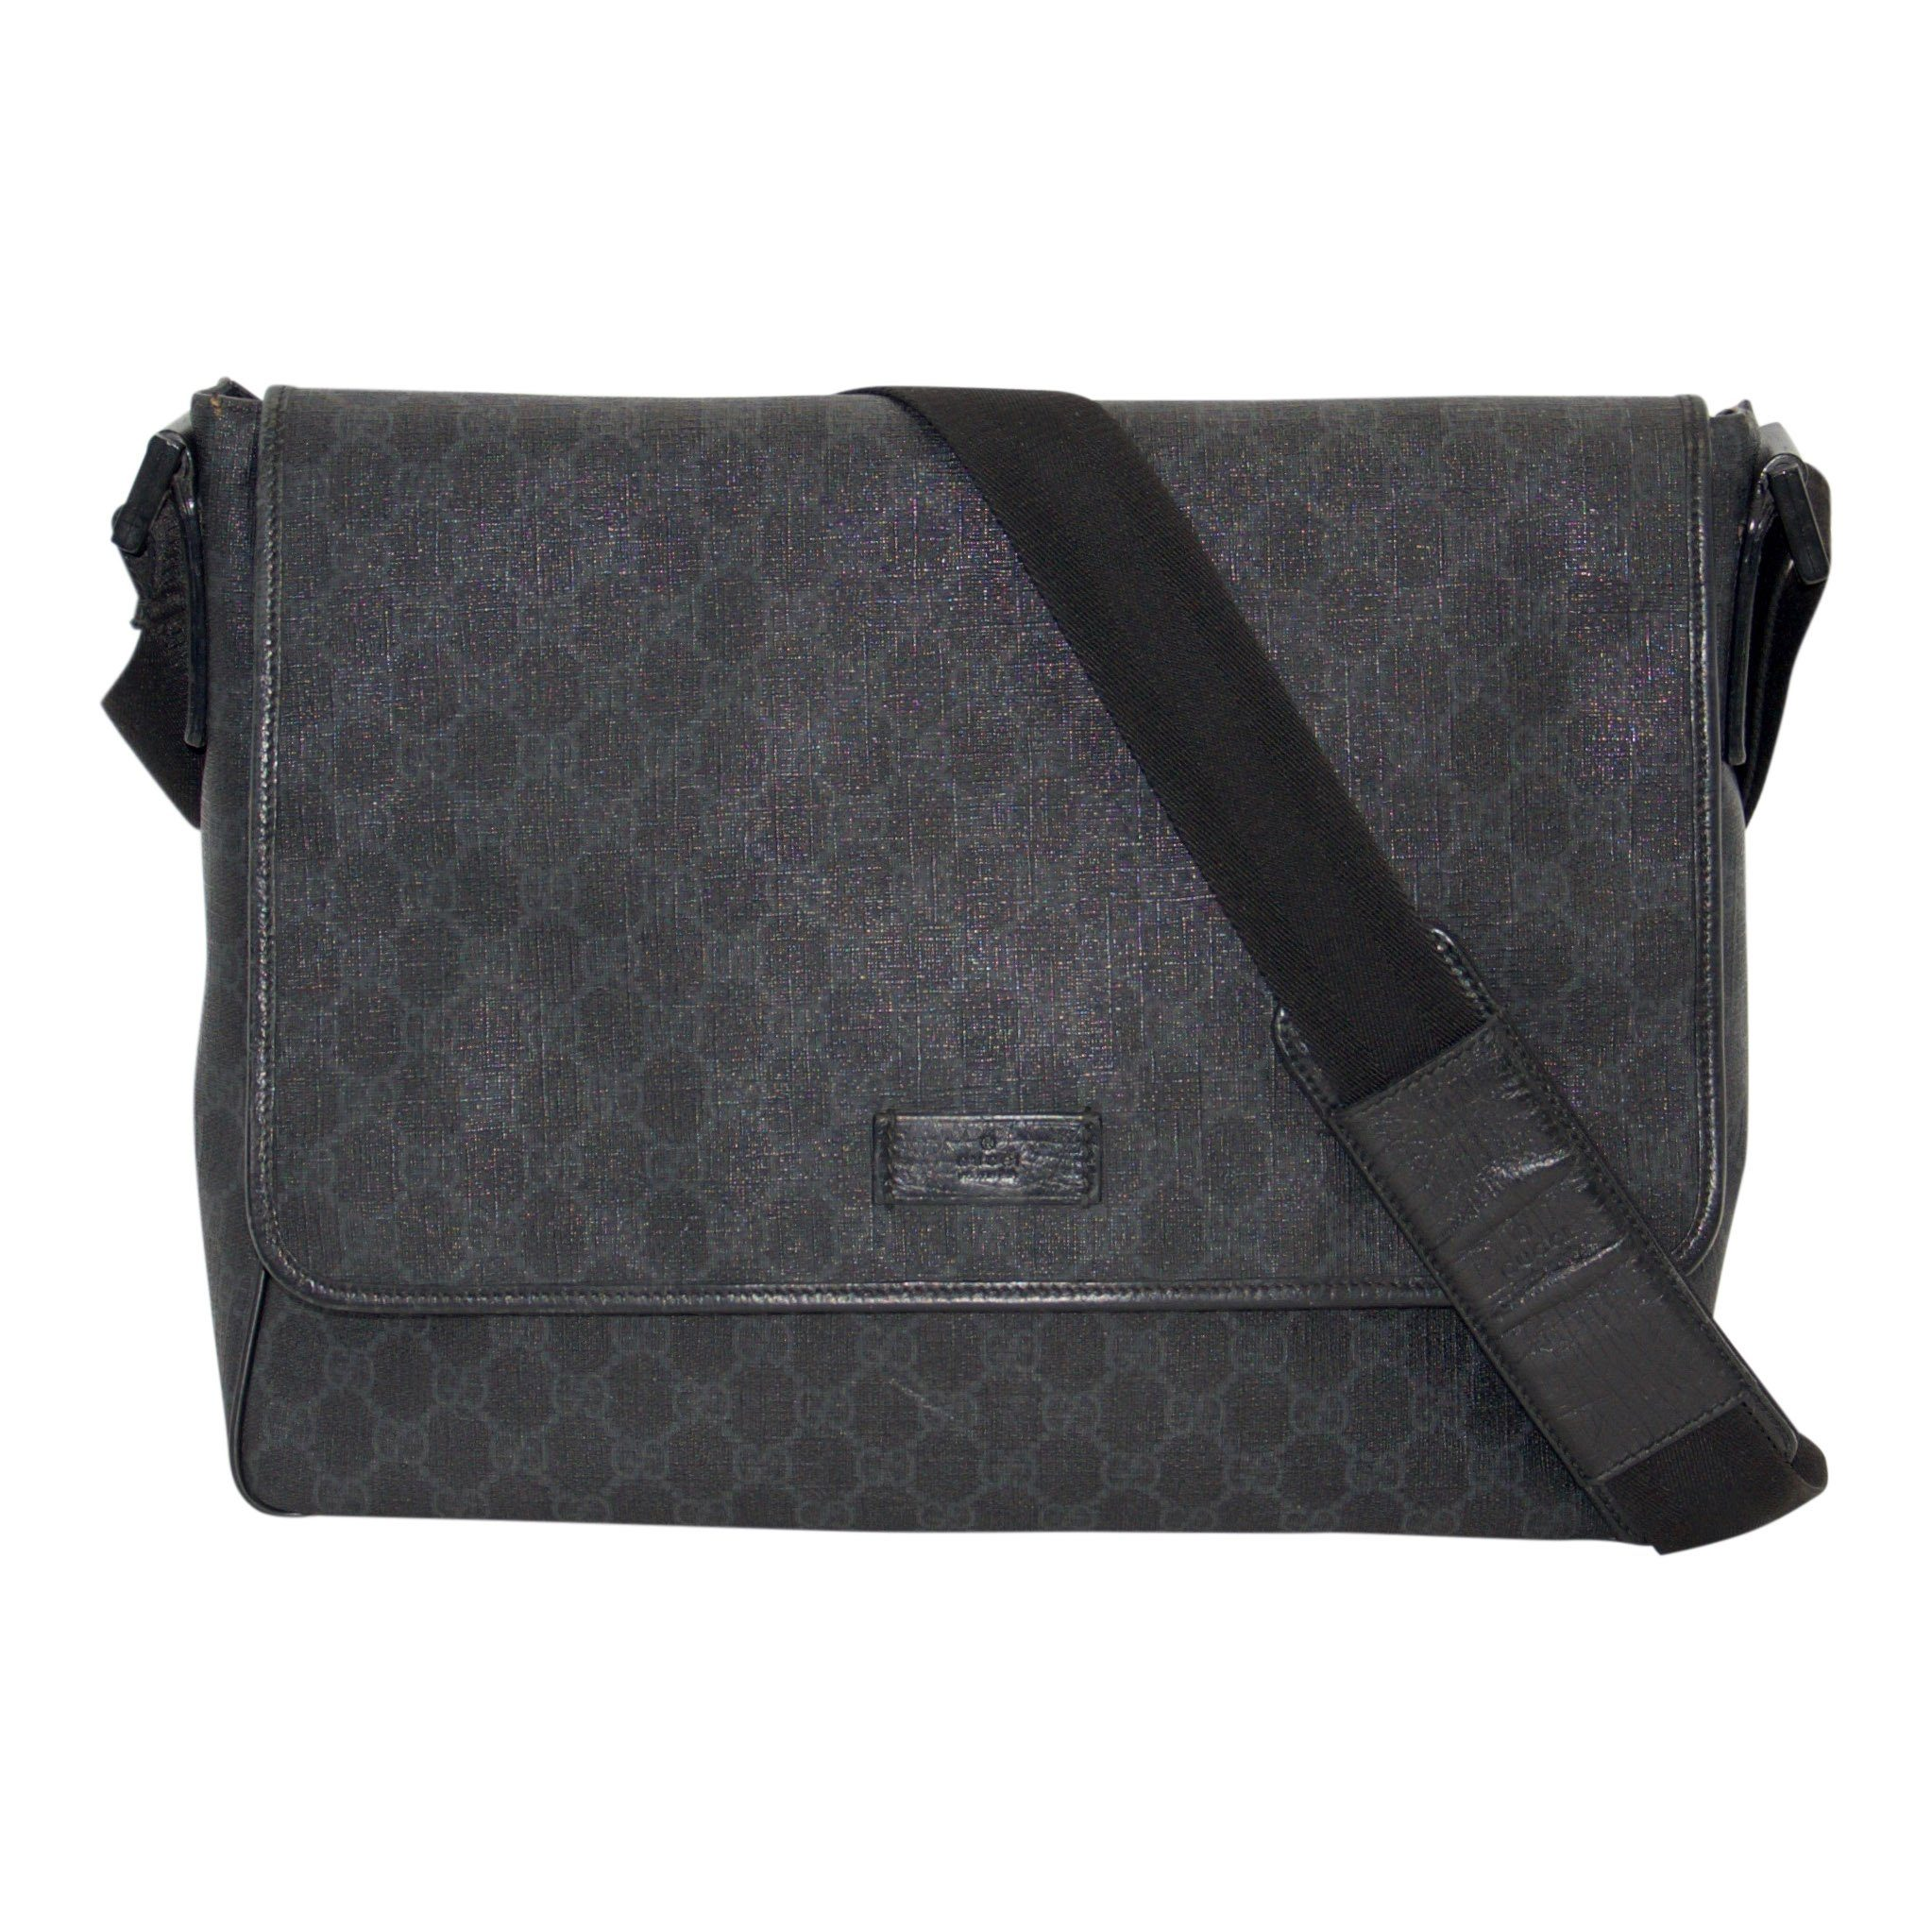 081f869fa03 Gucci Black GG Coated Canvas Messenger Bag - Oliver Jewellery